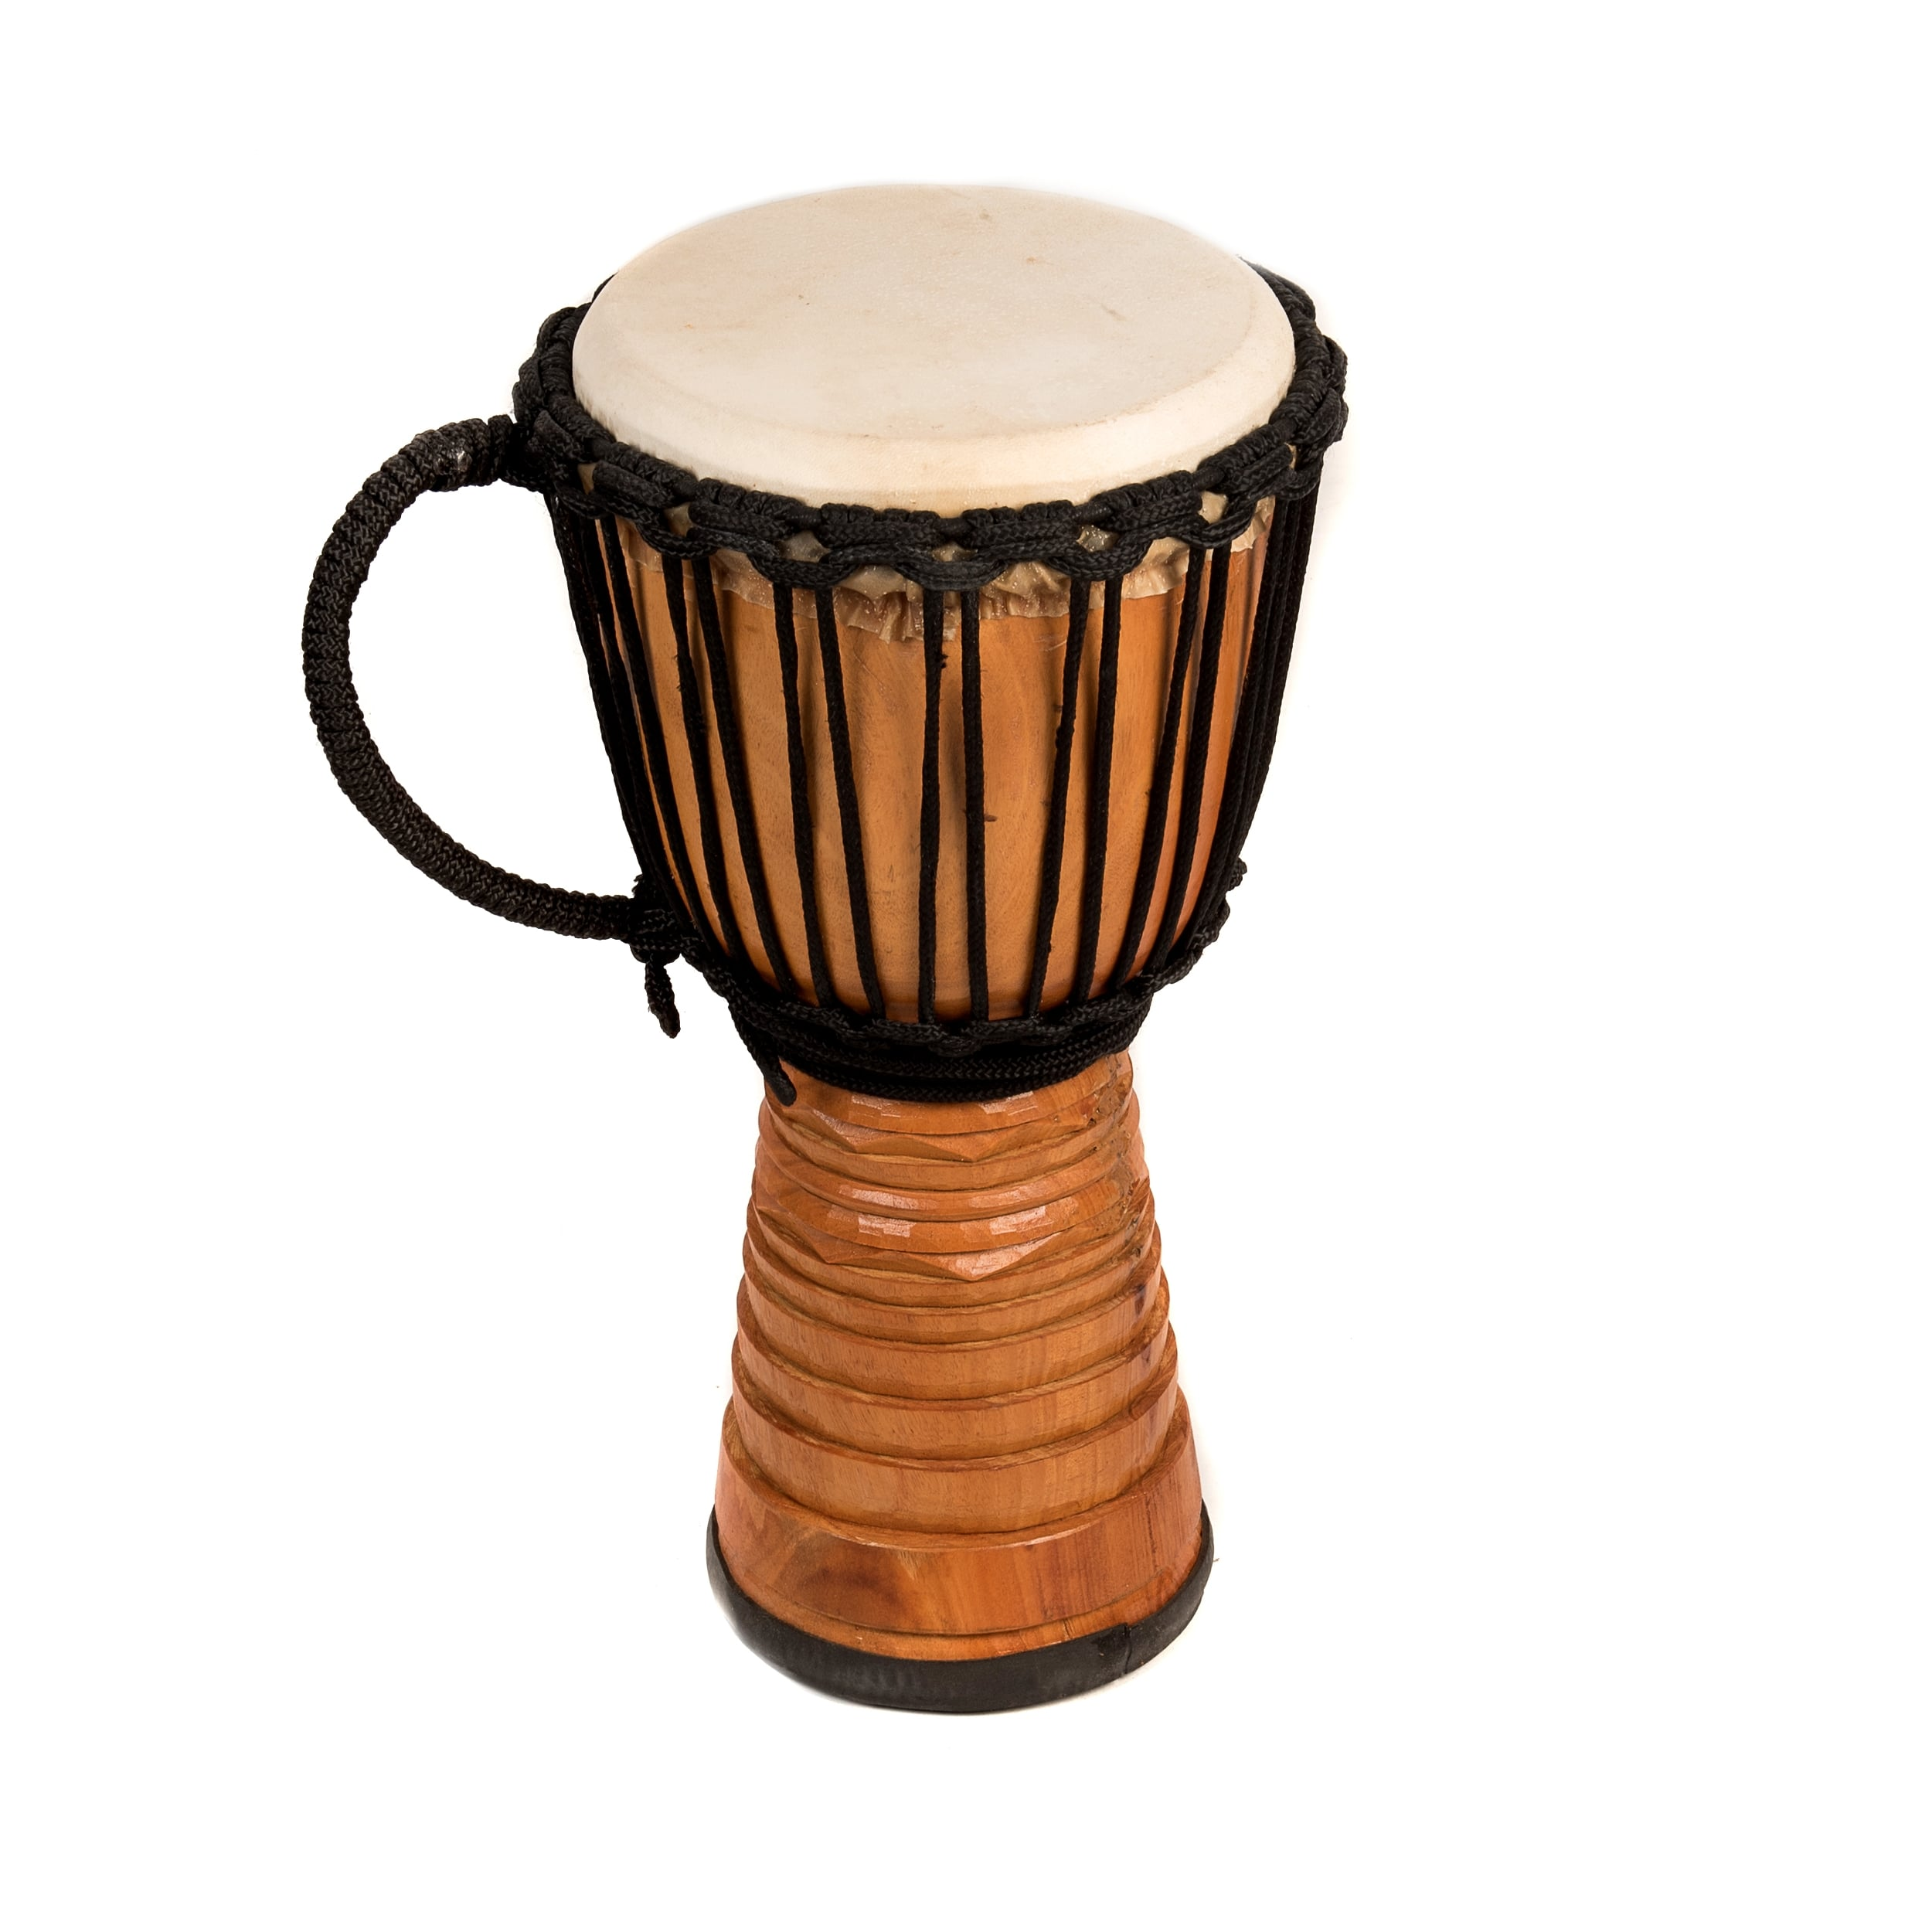 This is a product image of the Djembe Drum - Premium - 10in diameter, 50cm high, deep carved from the side.